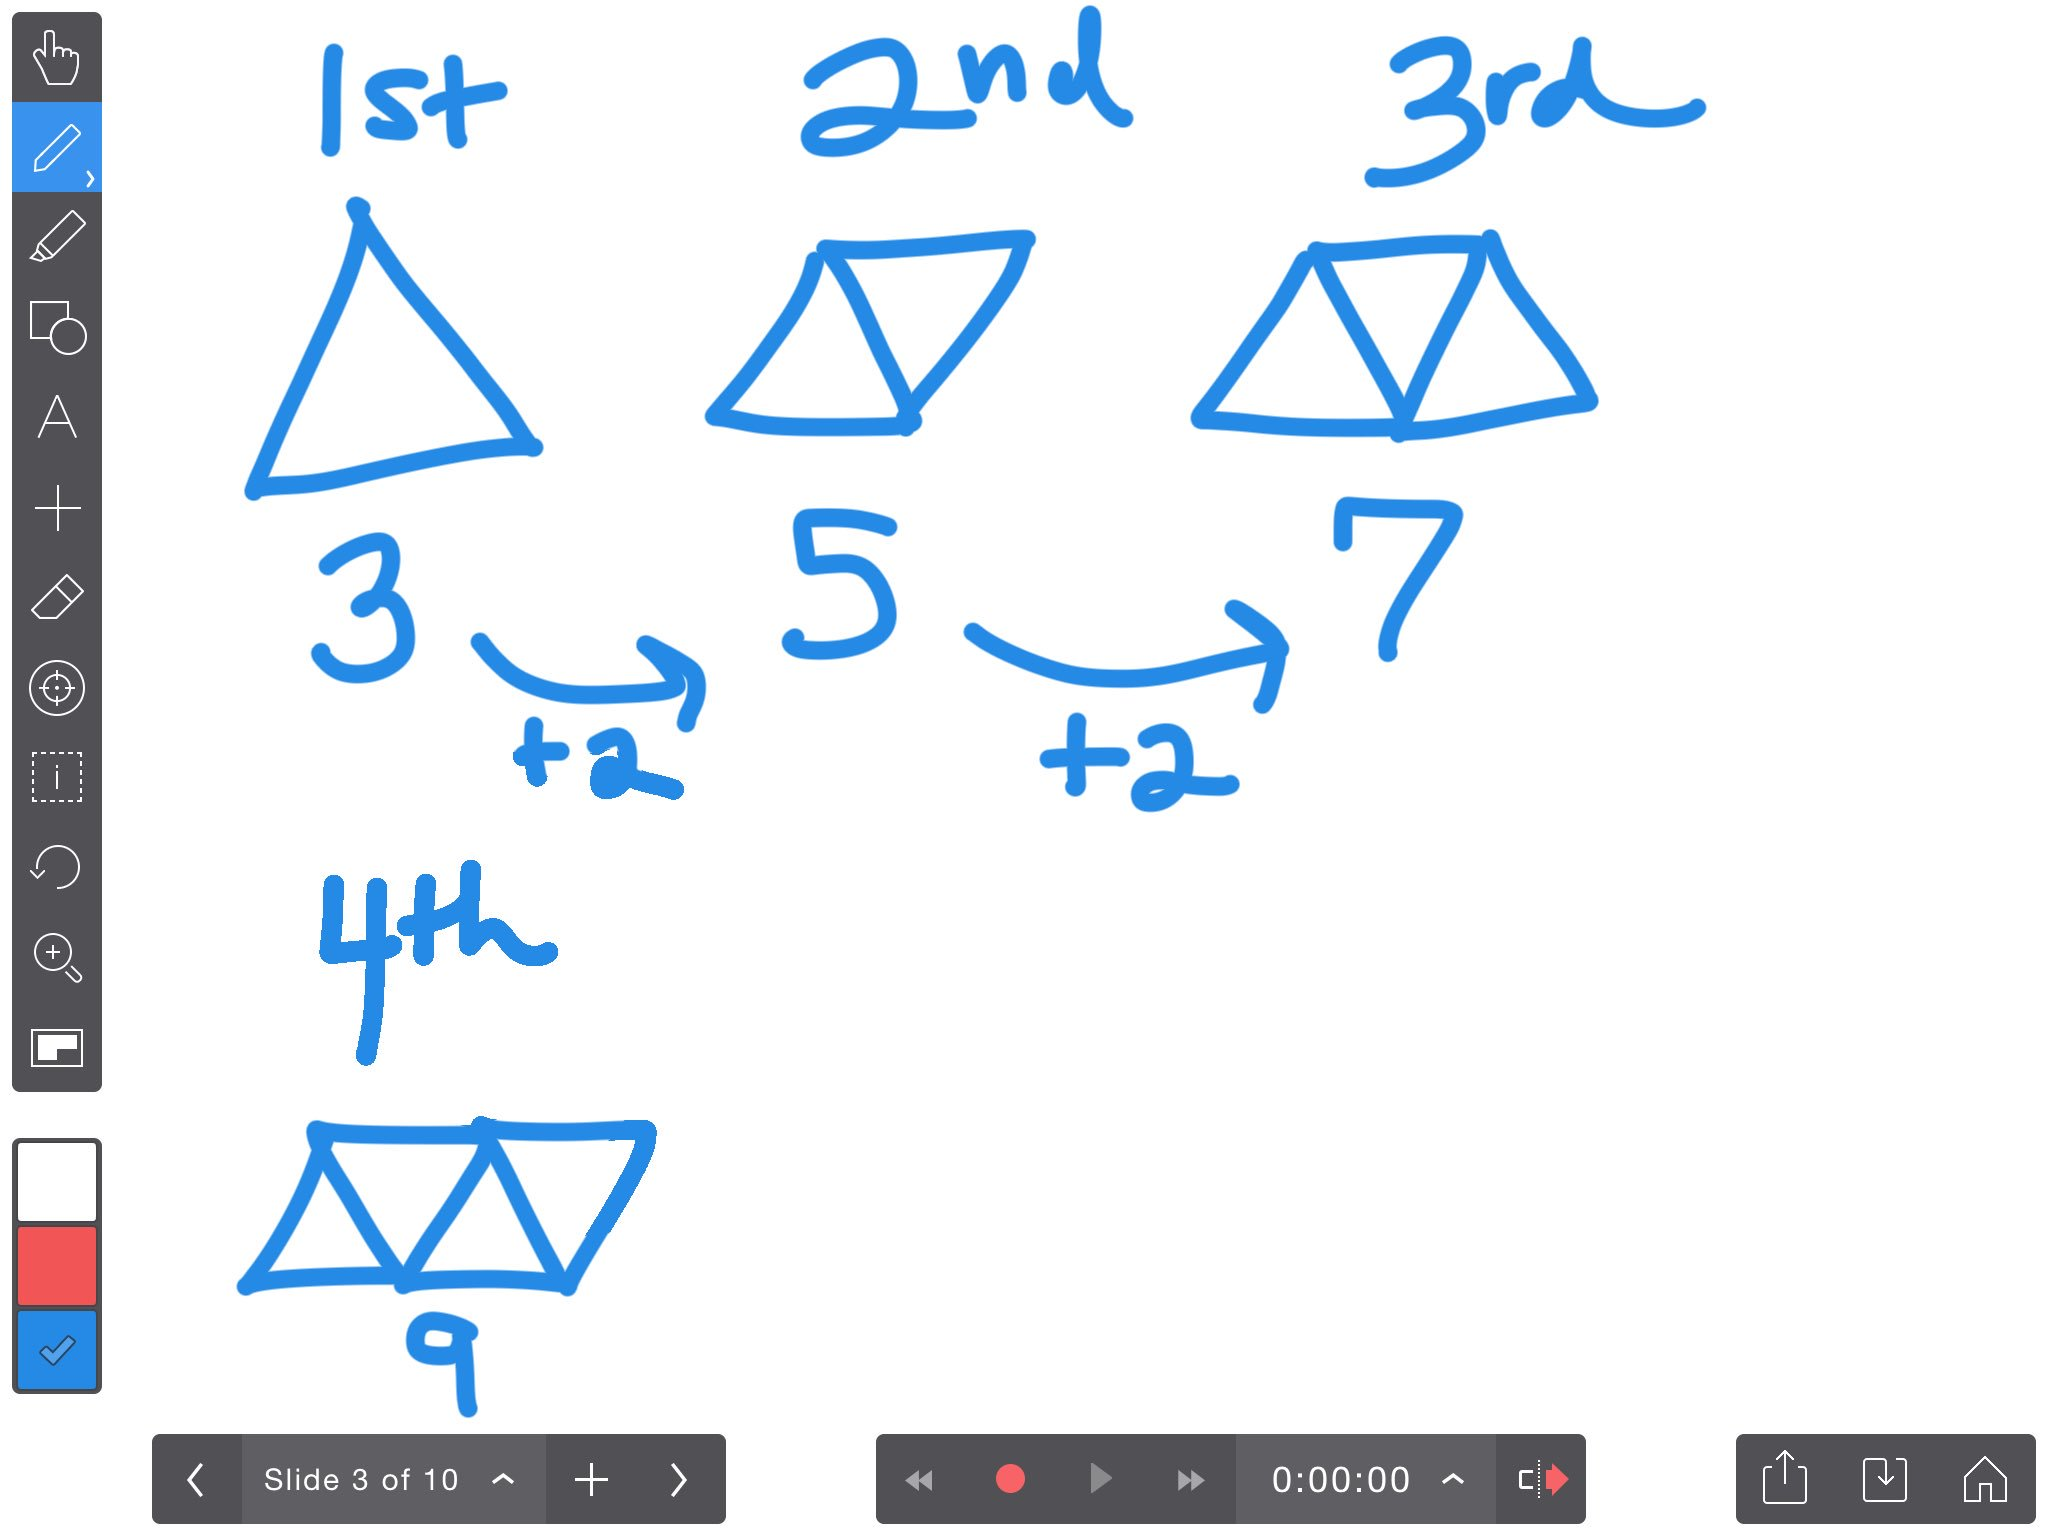 Used @explainevrythng to model solving a math problem. Ss gave me feedback on strategies I used & gave me advice for the future. #dg58learns https://t.co/Y9sMvsYeDS